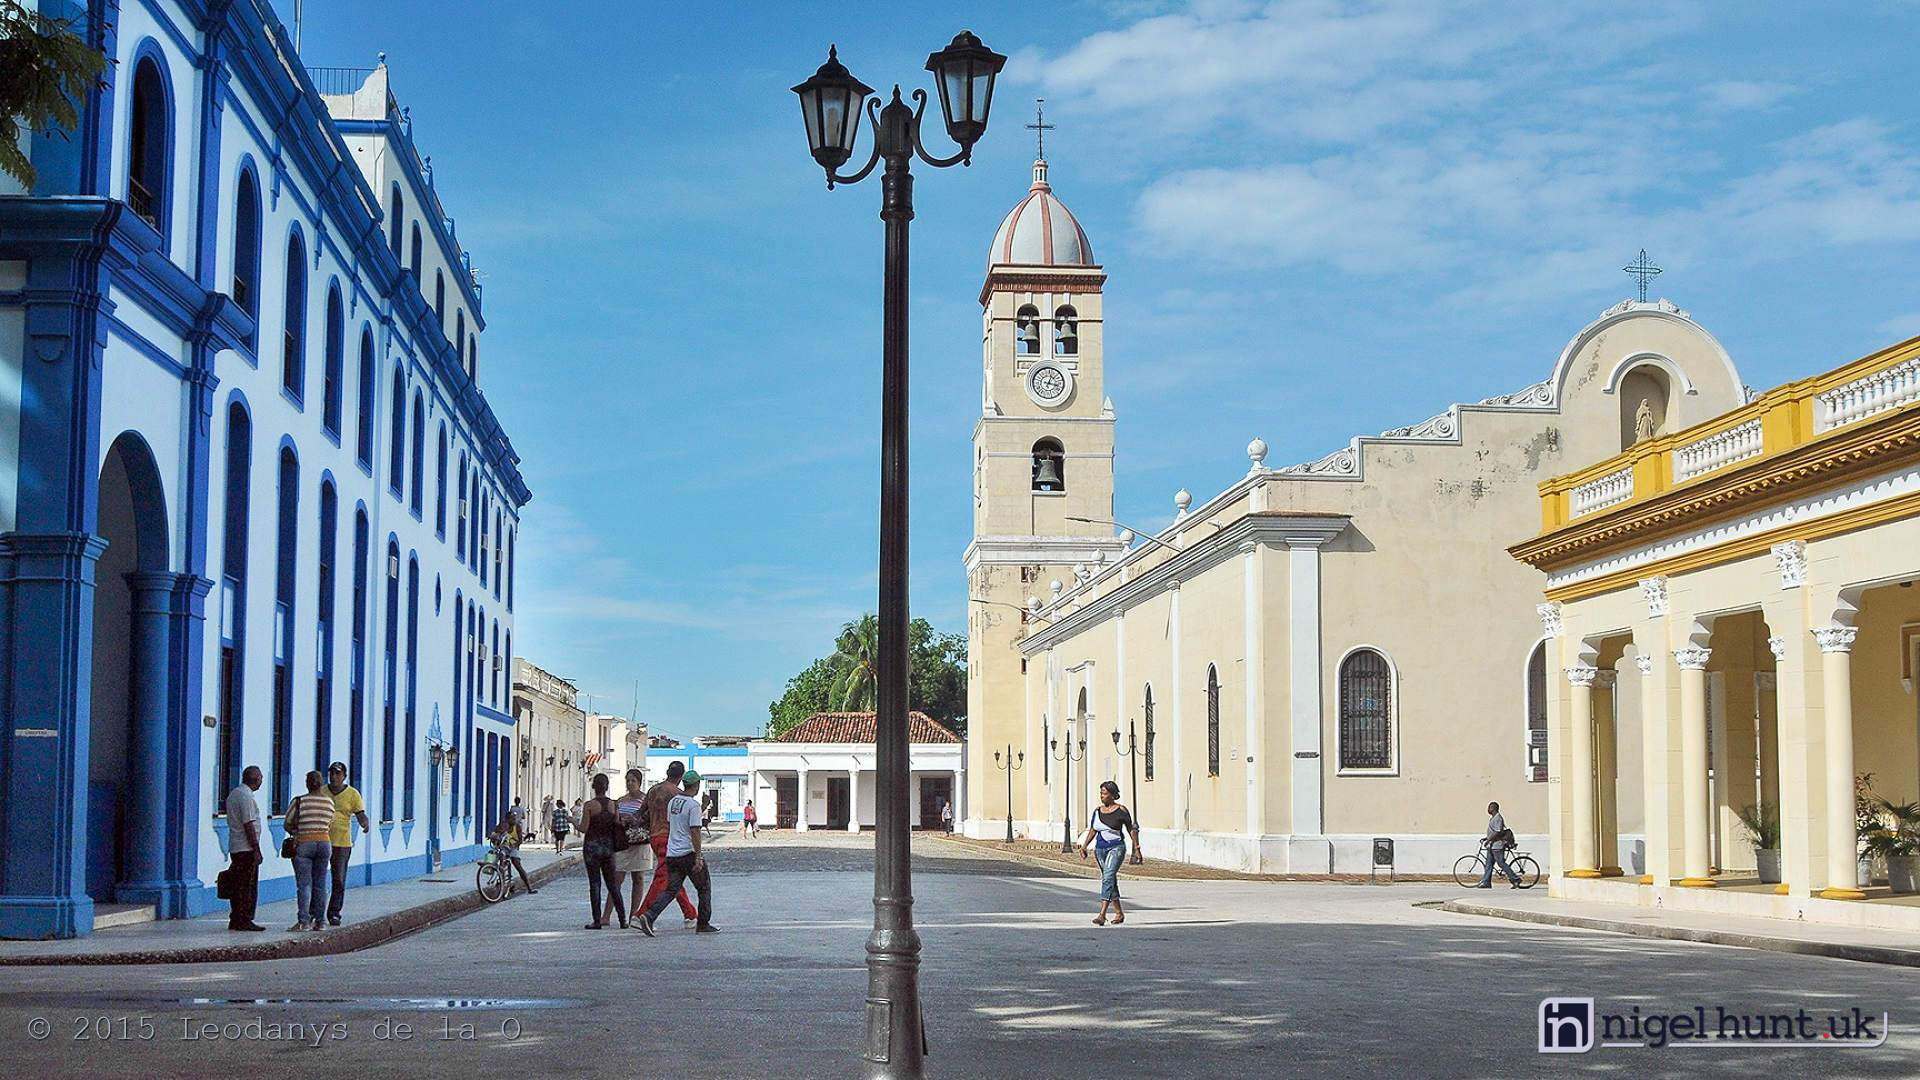 Colonial Archituecture of Bayamo's church, Cuba